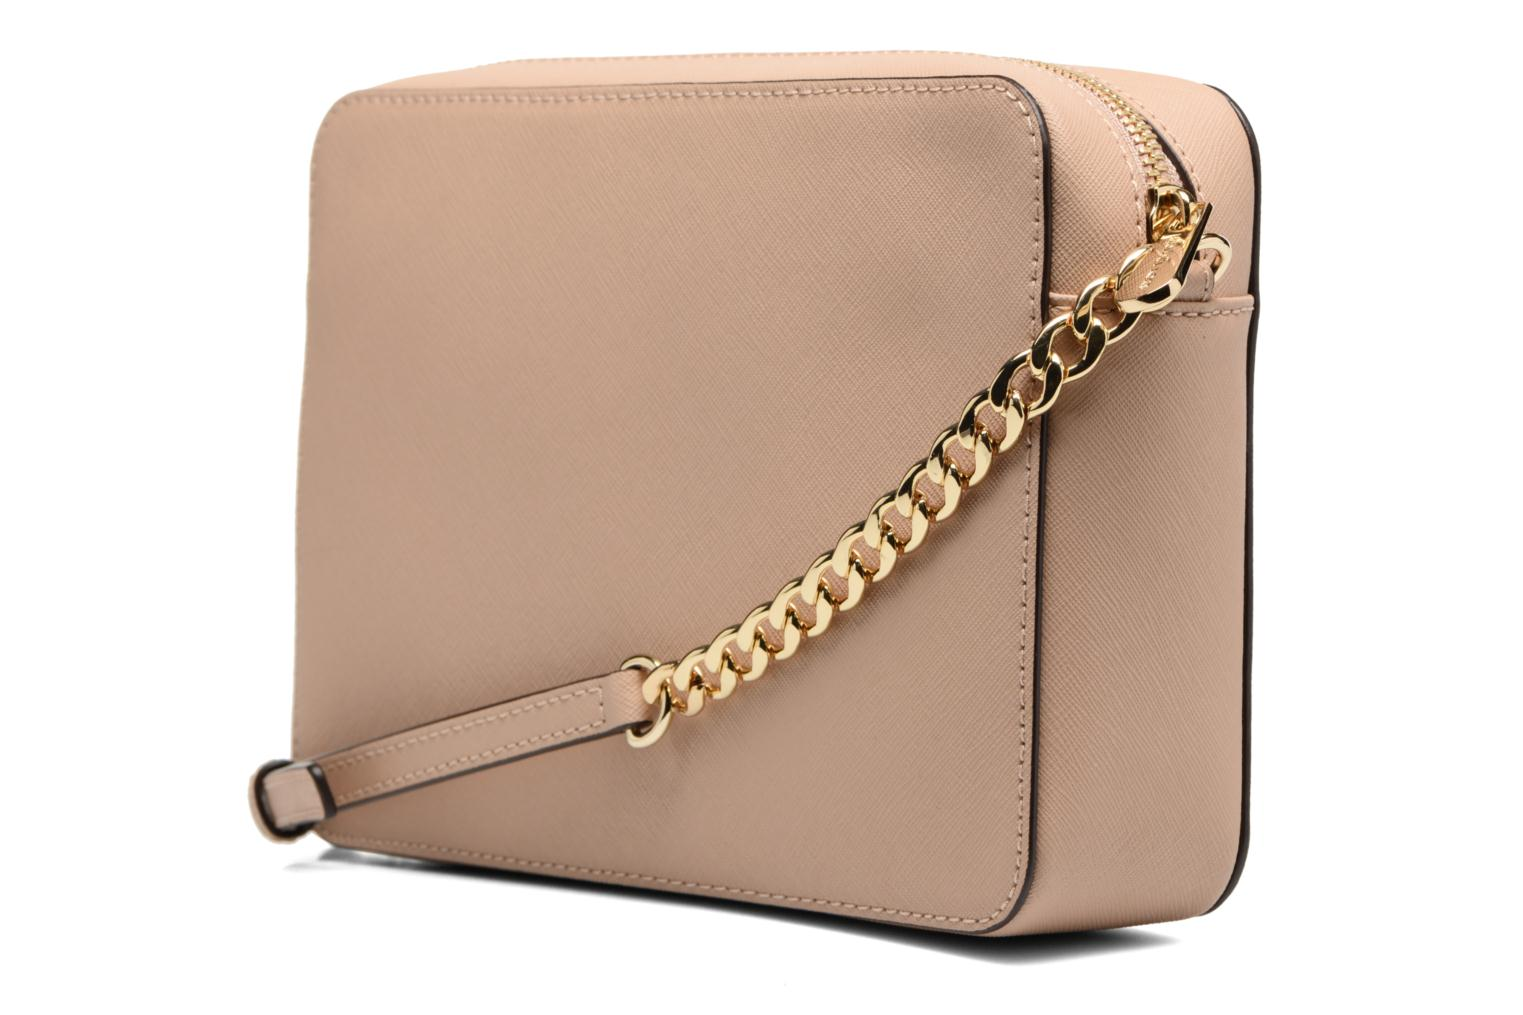 JET SET TRAVEL LG CROSSBODY Oyster